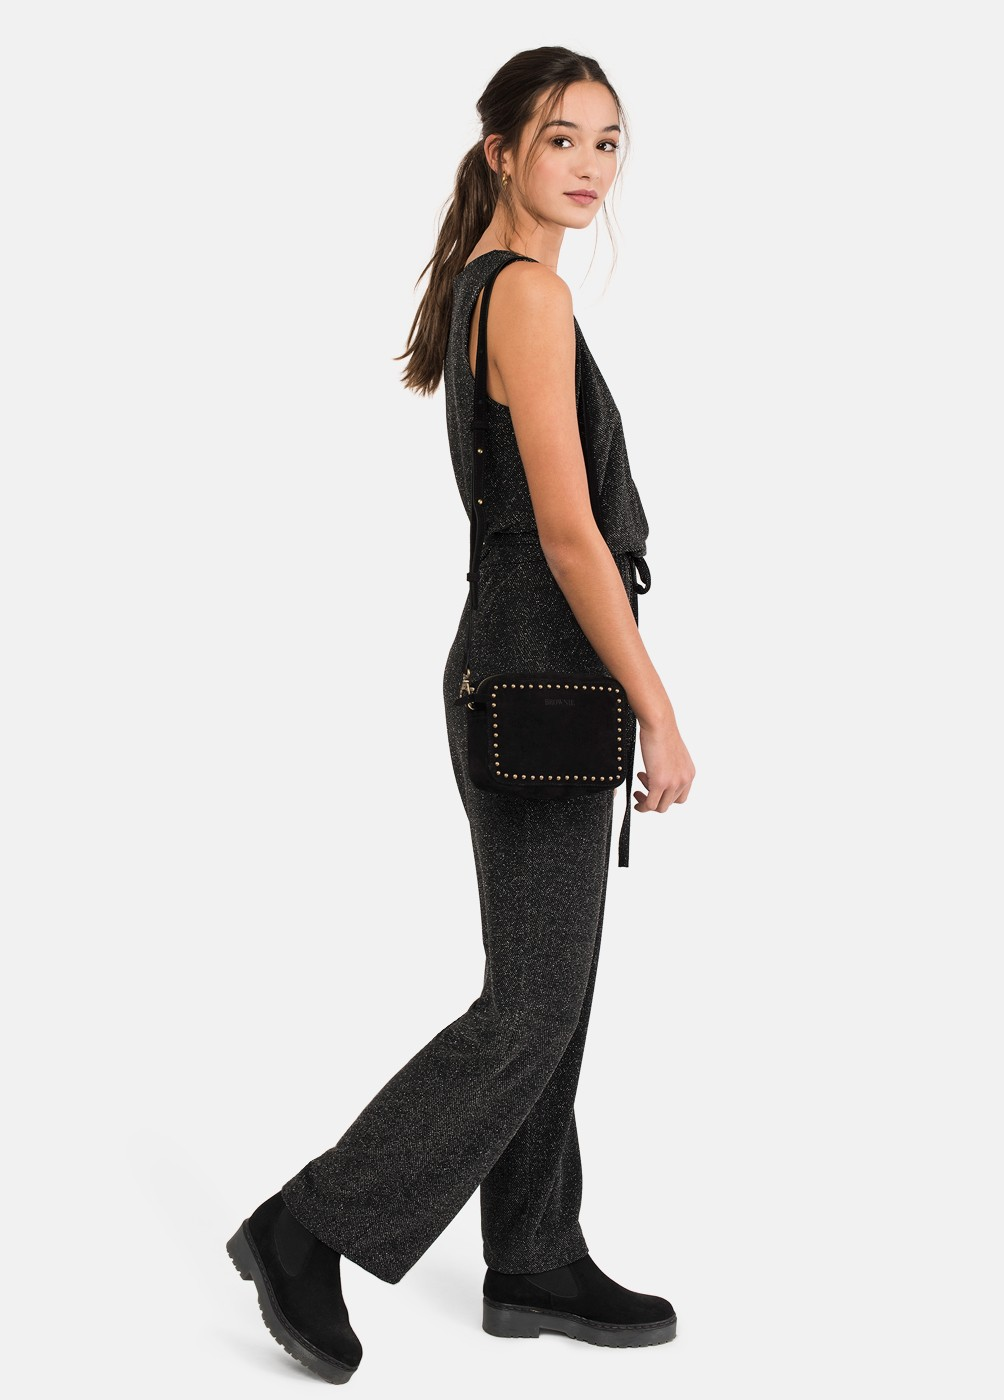 MONO PANTALON NIGHT STRASS CRUCE ESCOTE